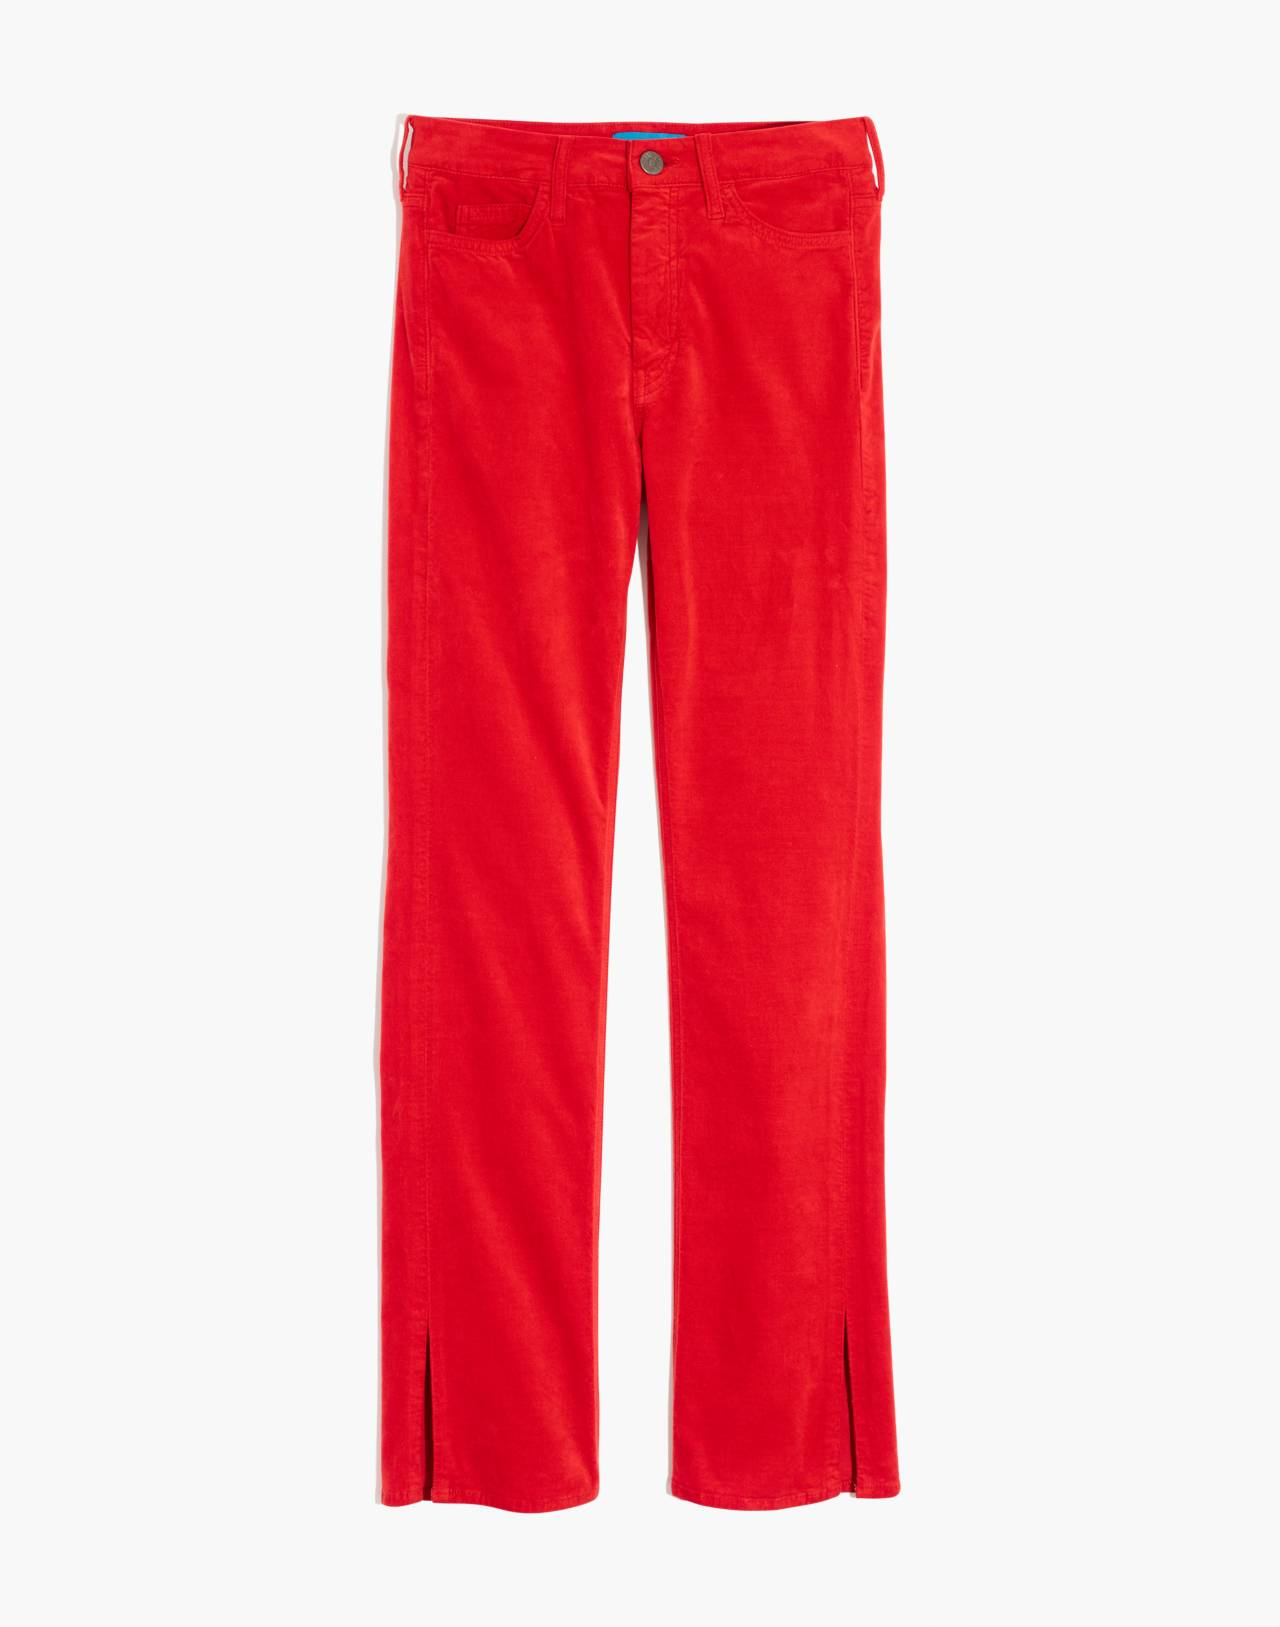 M.i.h® High-Rise Straight Jeans in Velvet in cherry red image 4